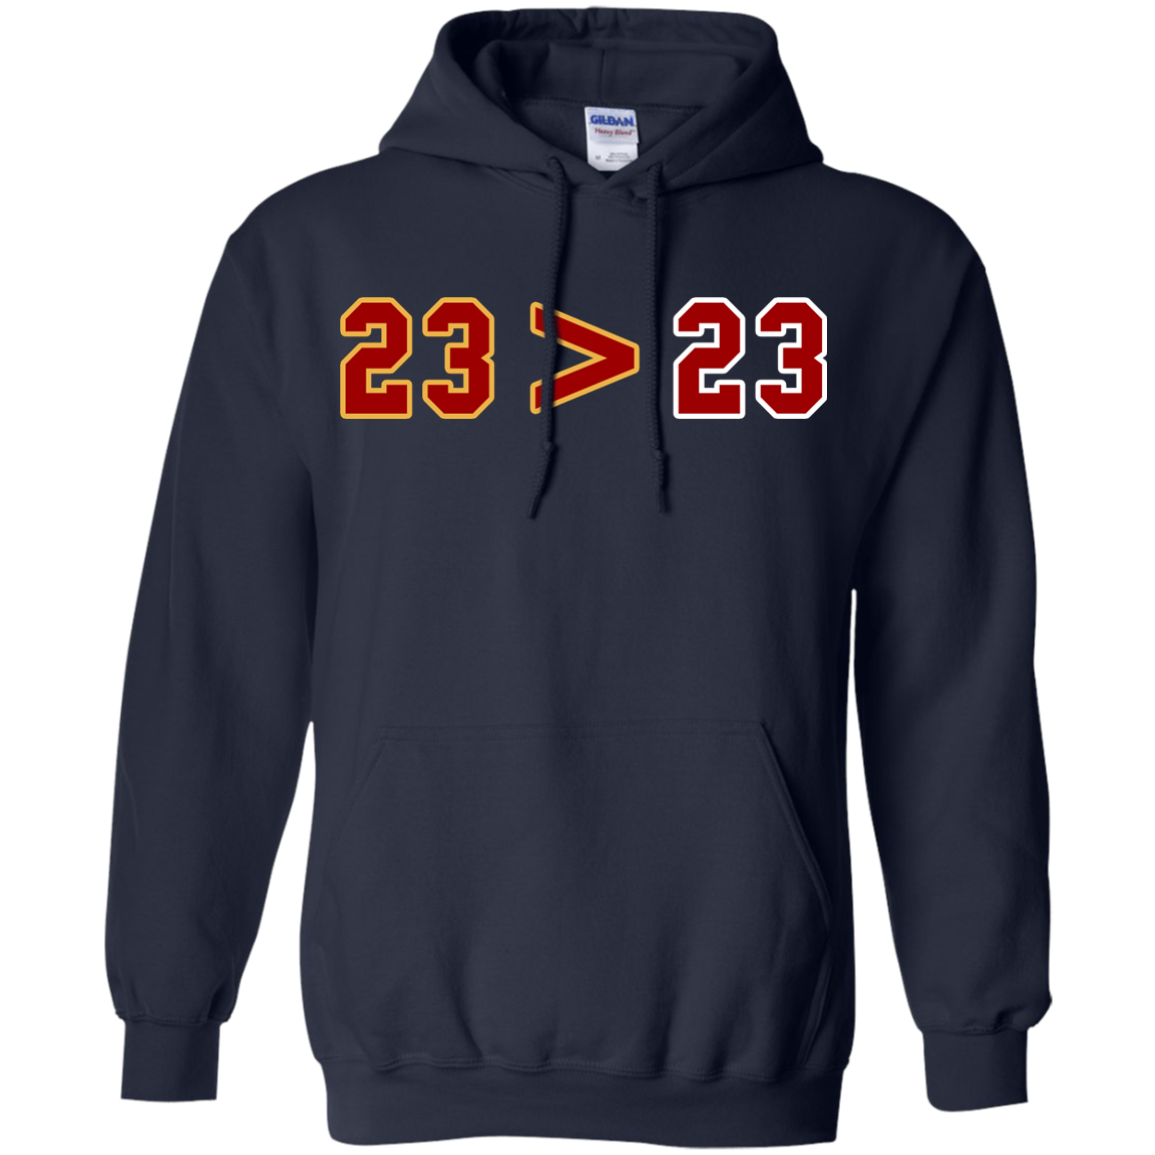 new product 09c79 f7462 LeBron Greater Than Jordan 23 Greater 23 T-Shirts, Hoodies, Tank